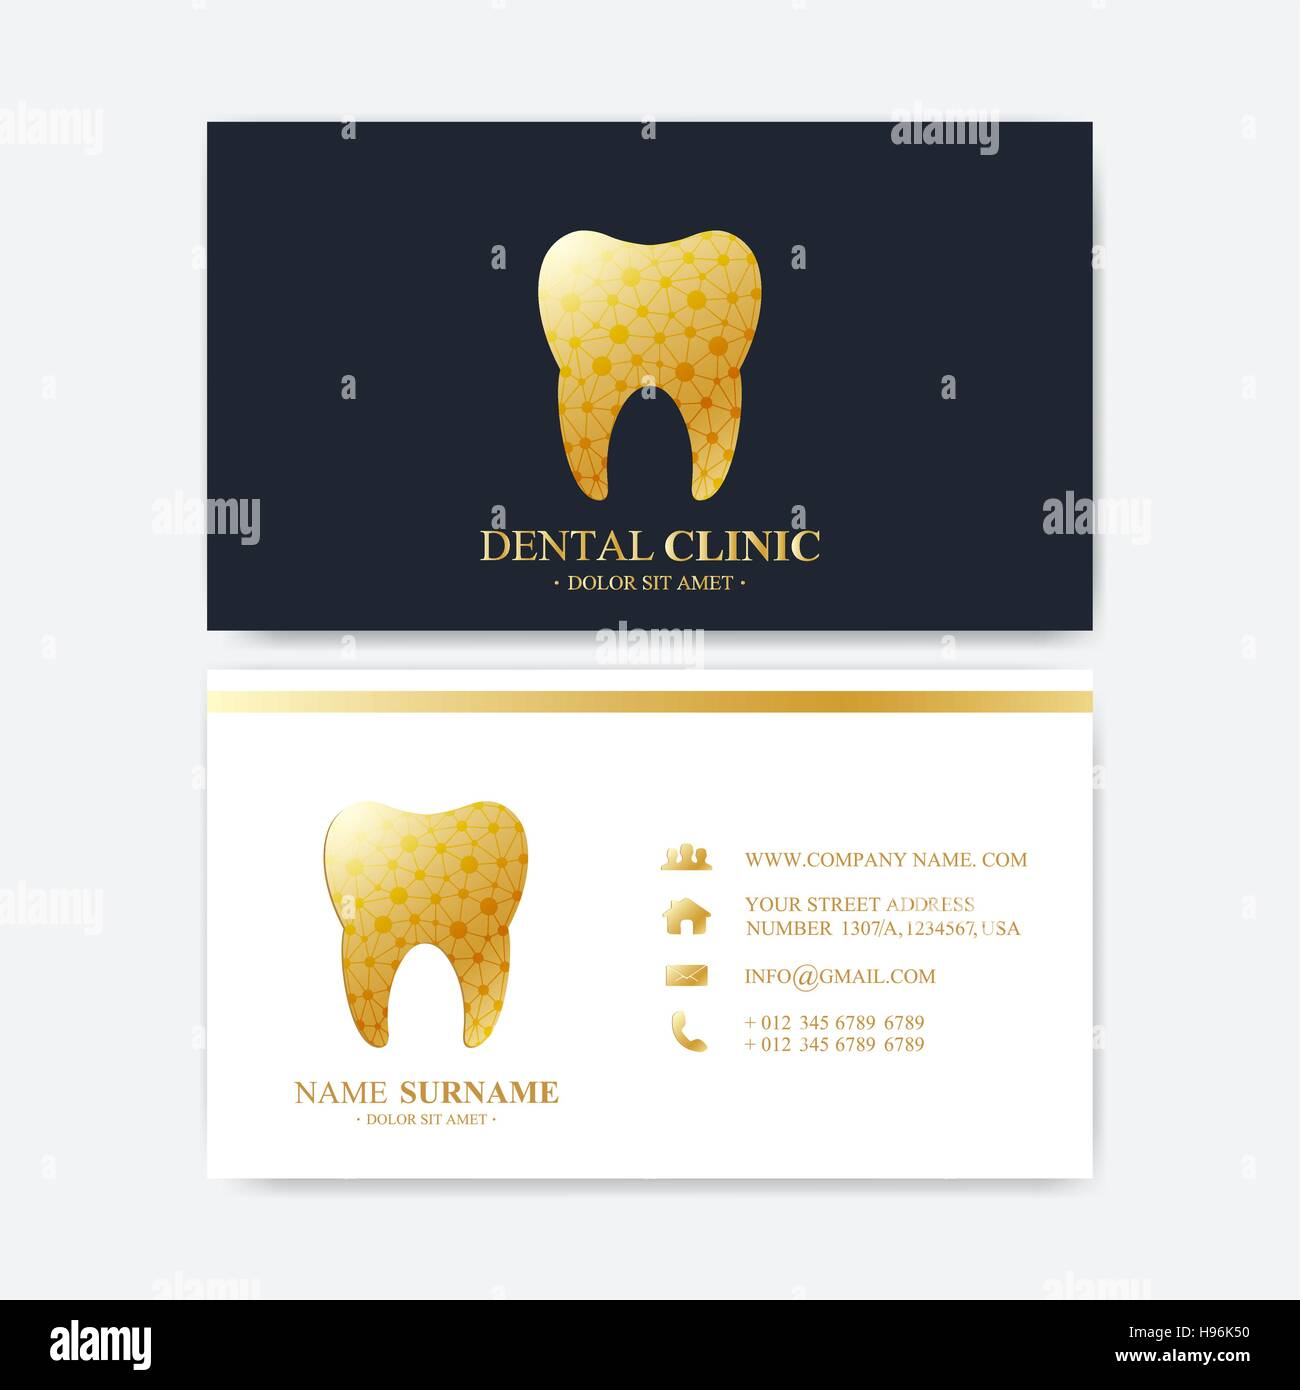 Premium Business Card Print Template. Visiting Dental Clinic Card ...